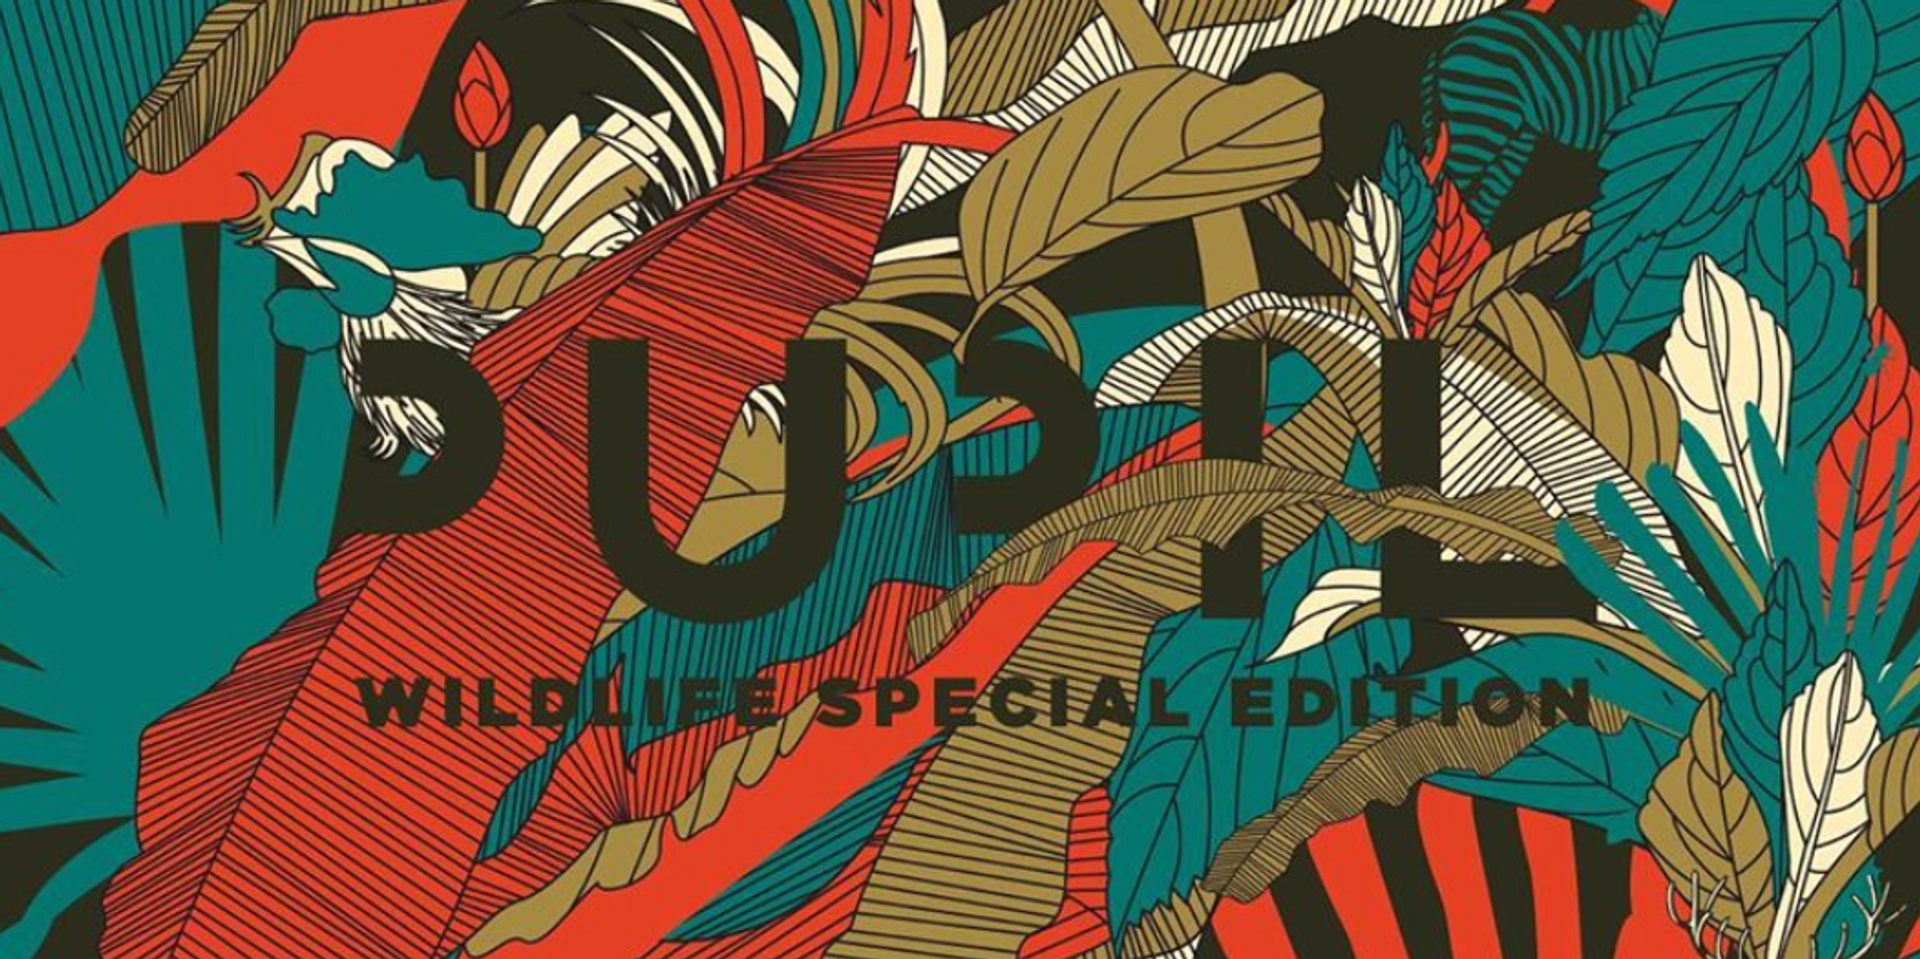 A special edition of Pupil's 2007 album, Wildlife, is now on streaming services – listen